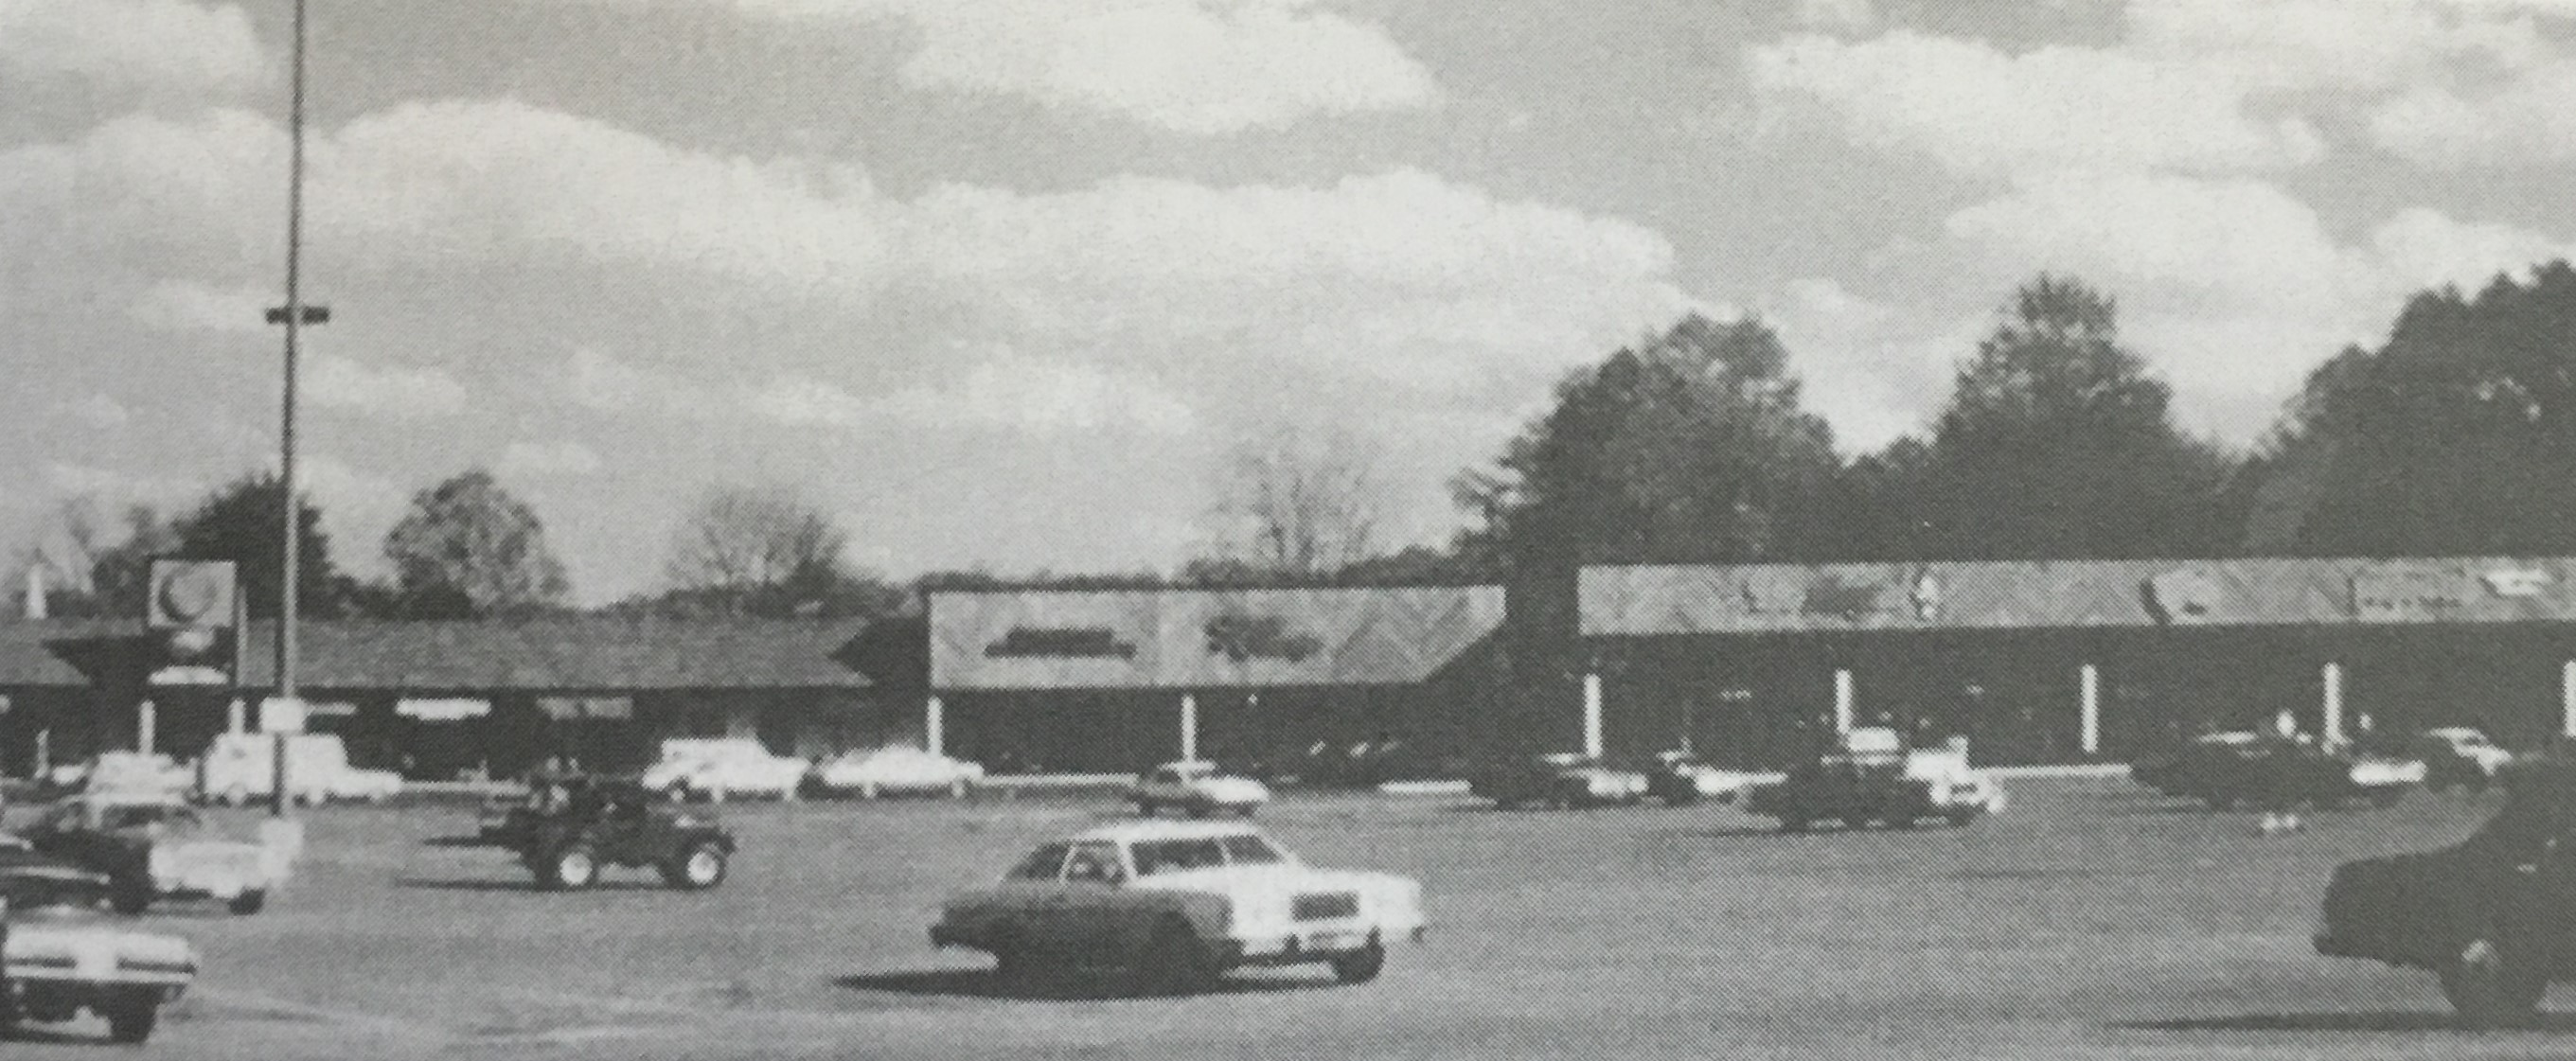 The plaza shortly after its opening in 1976. Image courtesy of the Ceredo Historical Society Museum.